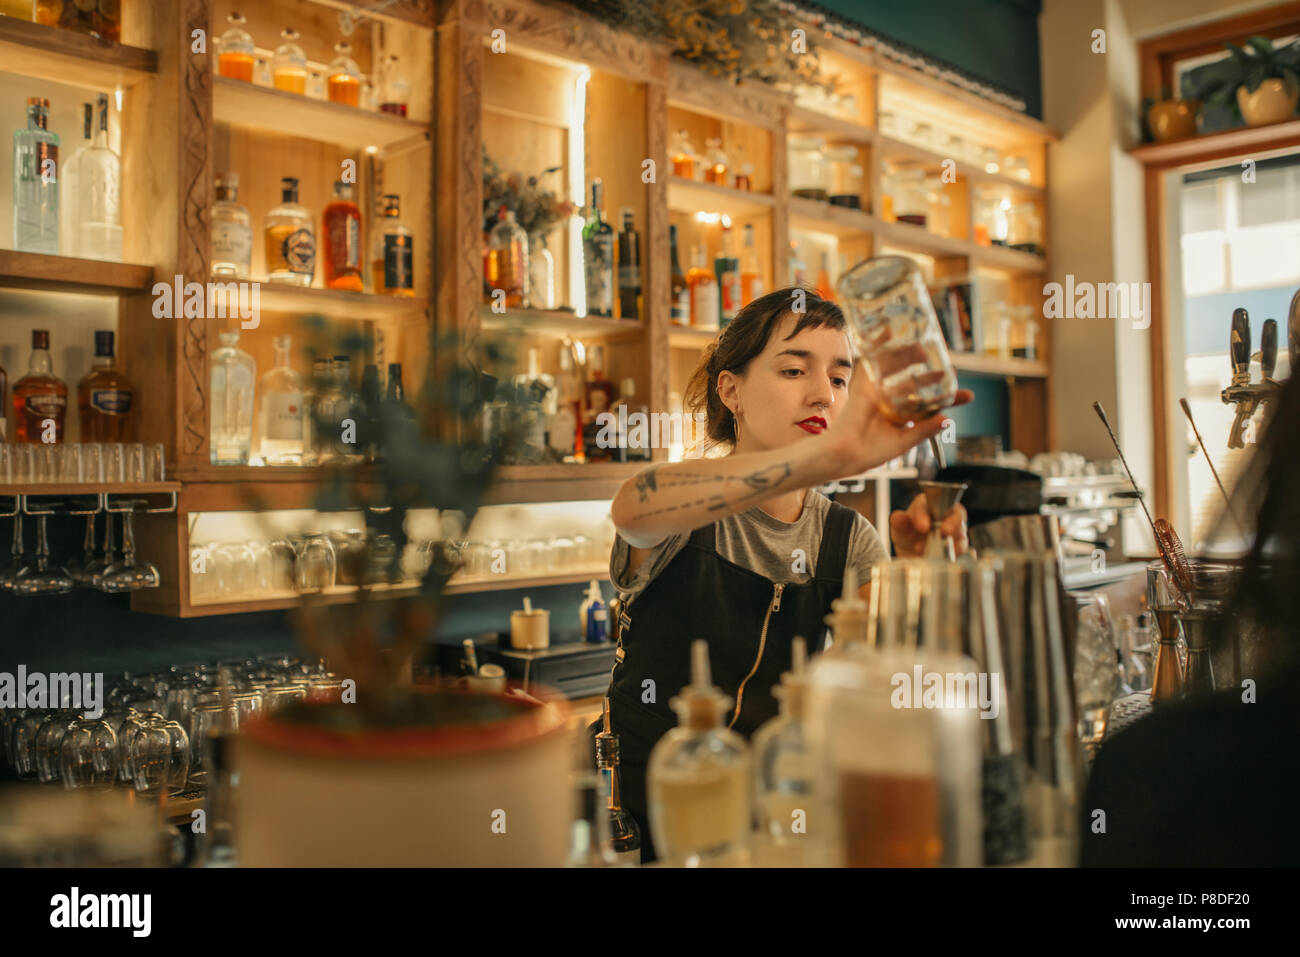 Young female bartender pouring cocktails behind a bar counter - Stock Image